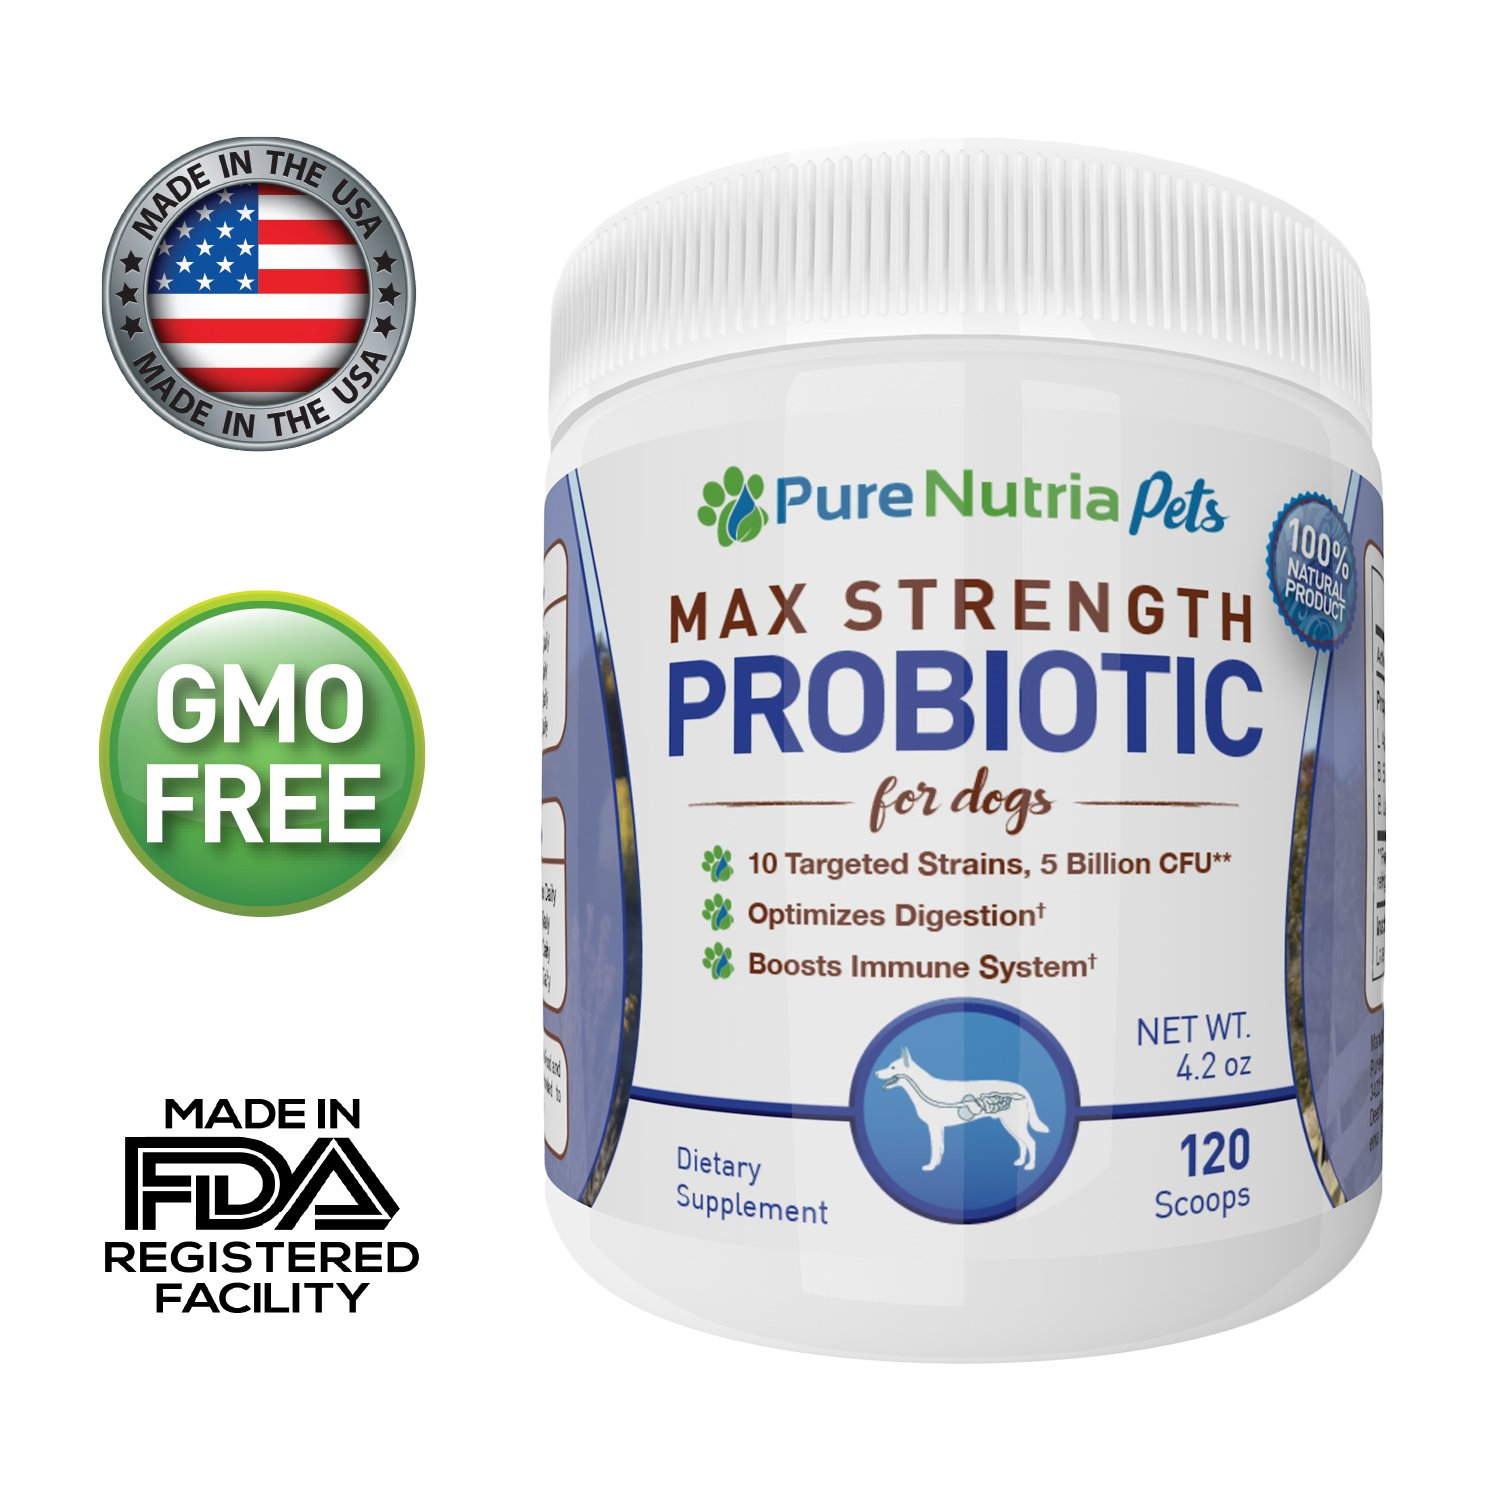 5 Billion CFU Dog Probiotic and Digestive Health Supplement for Dogs - 10 Targeted Strains in our BEST RATED Probiotic For Pets